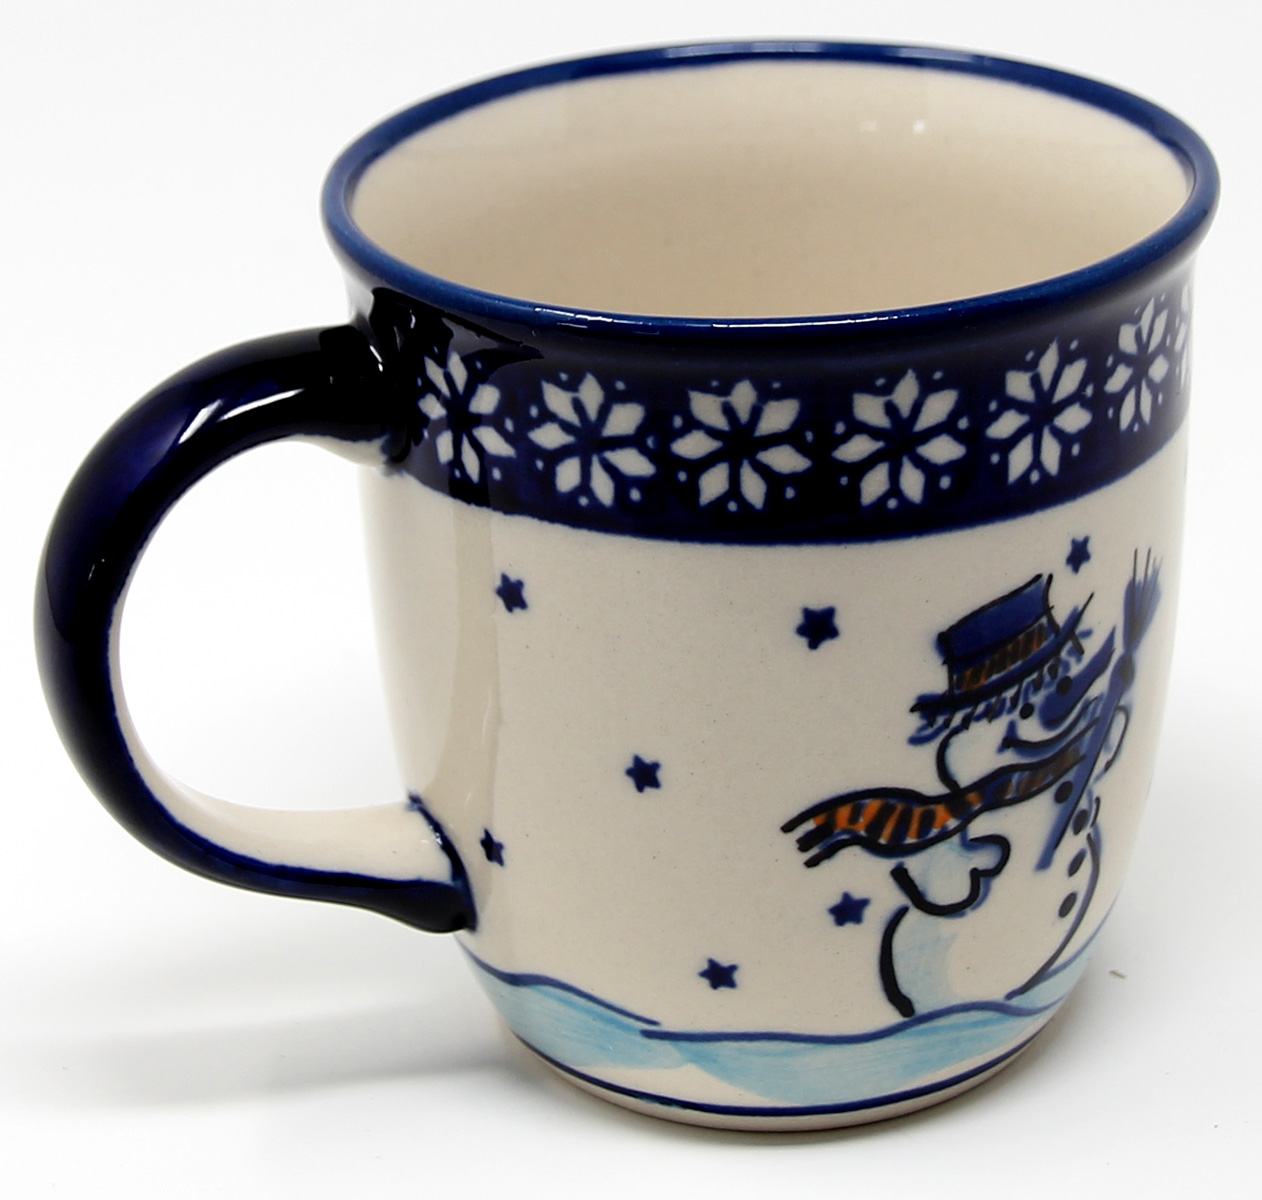 Polish Pottery Mug 12 Oz., Classic Design 476a